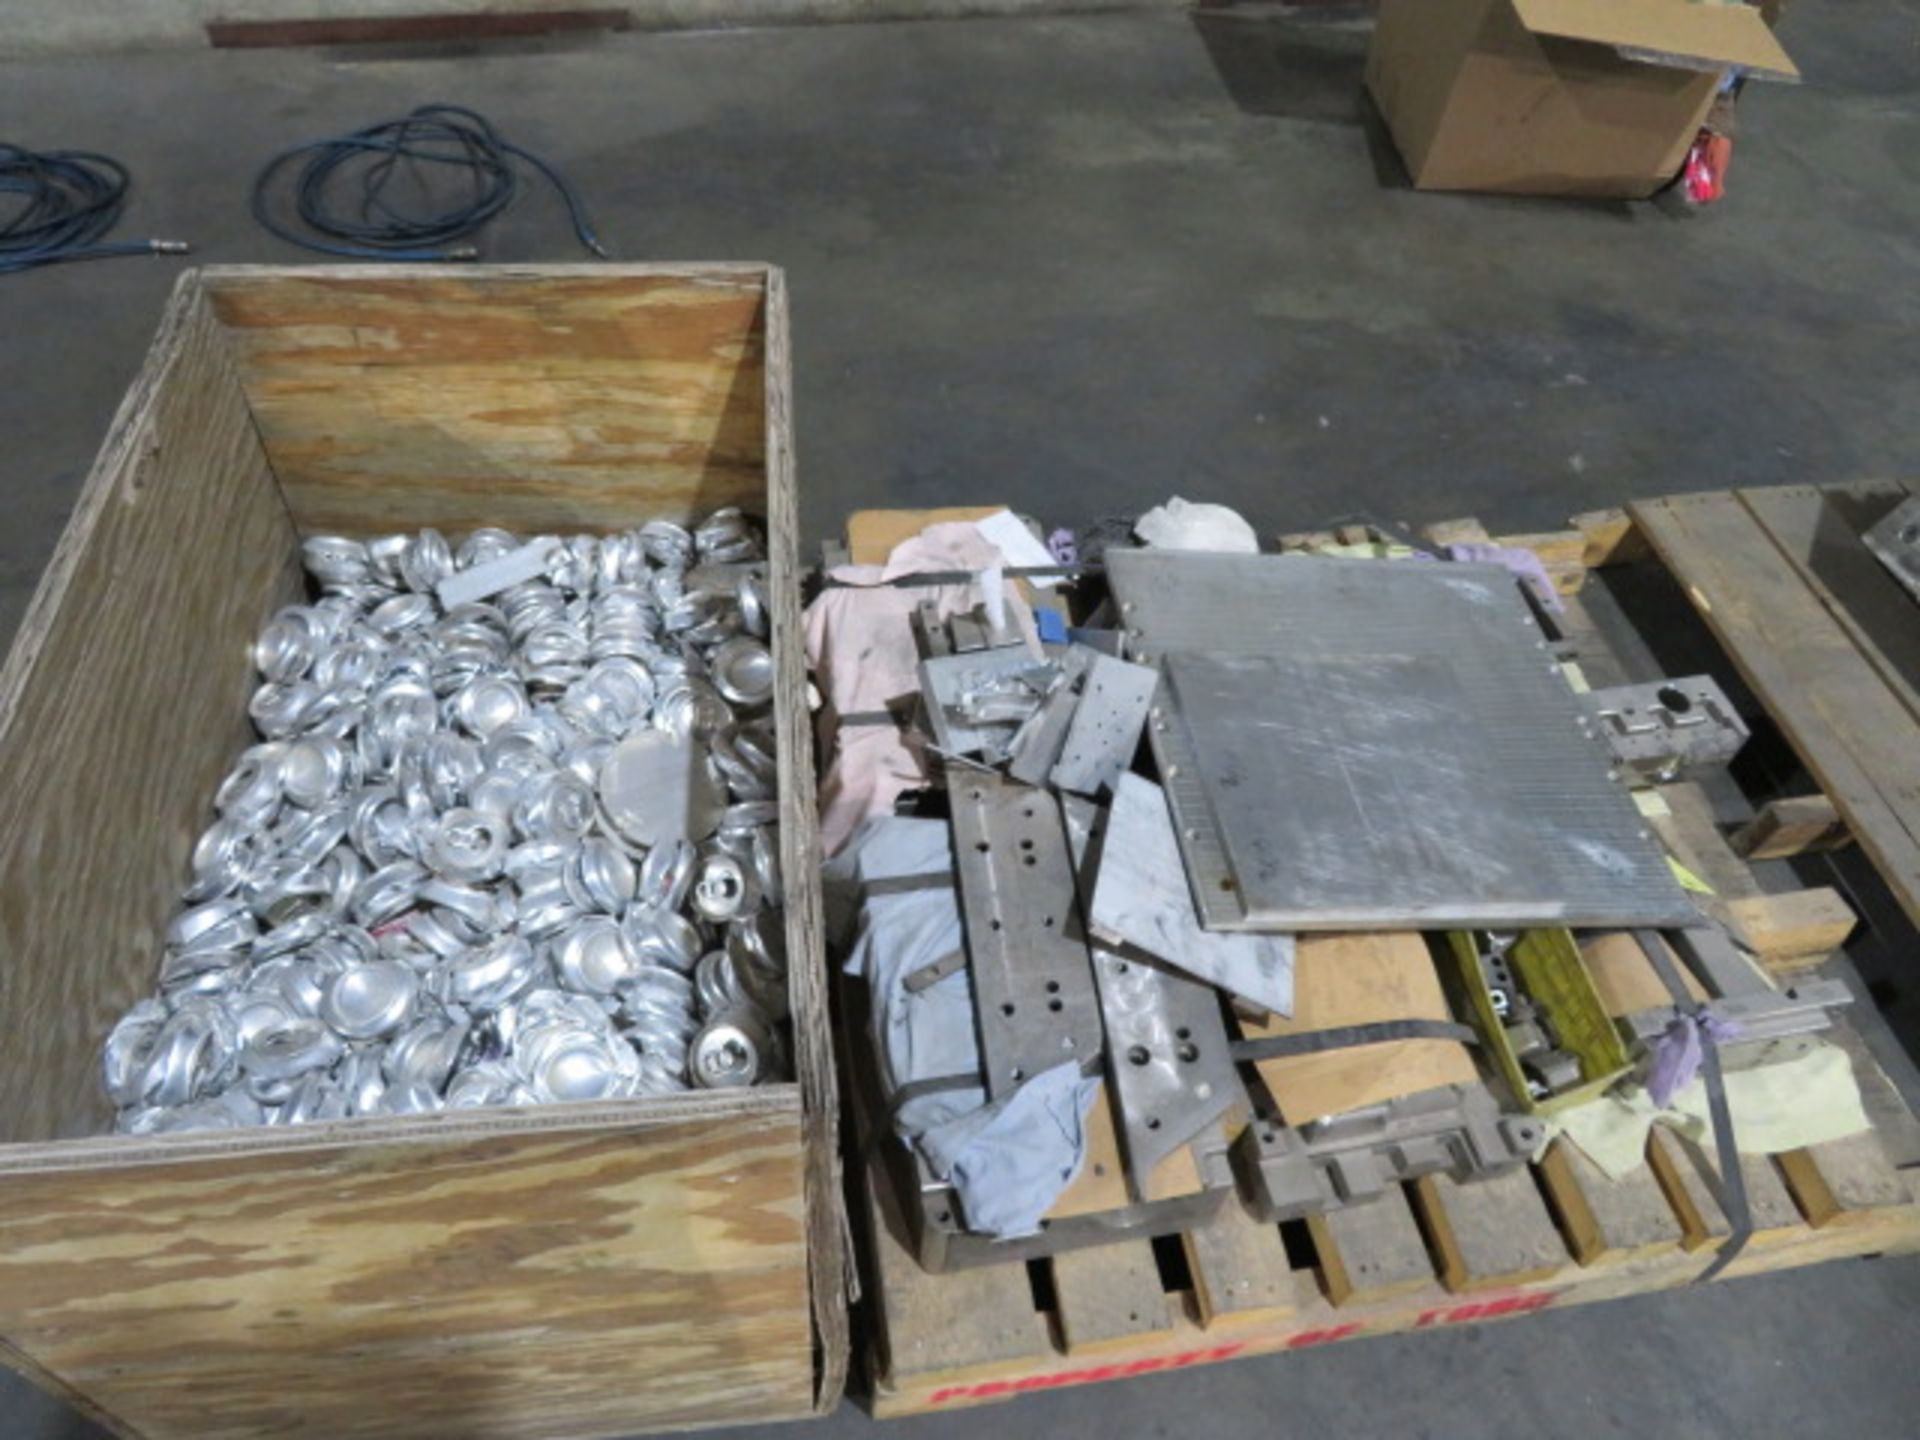 LOT CONSISTING OF: assorted aluminum, surplus, remnant, discontinued molds - Image 2 of 2